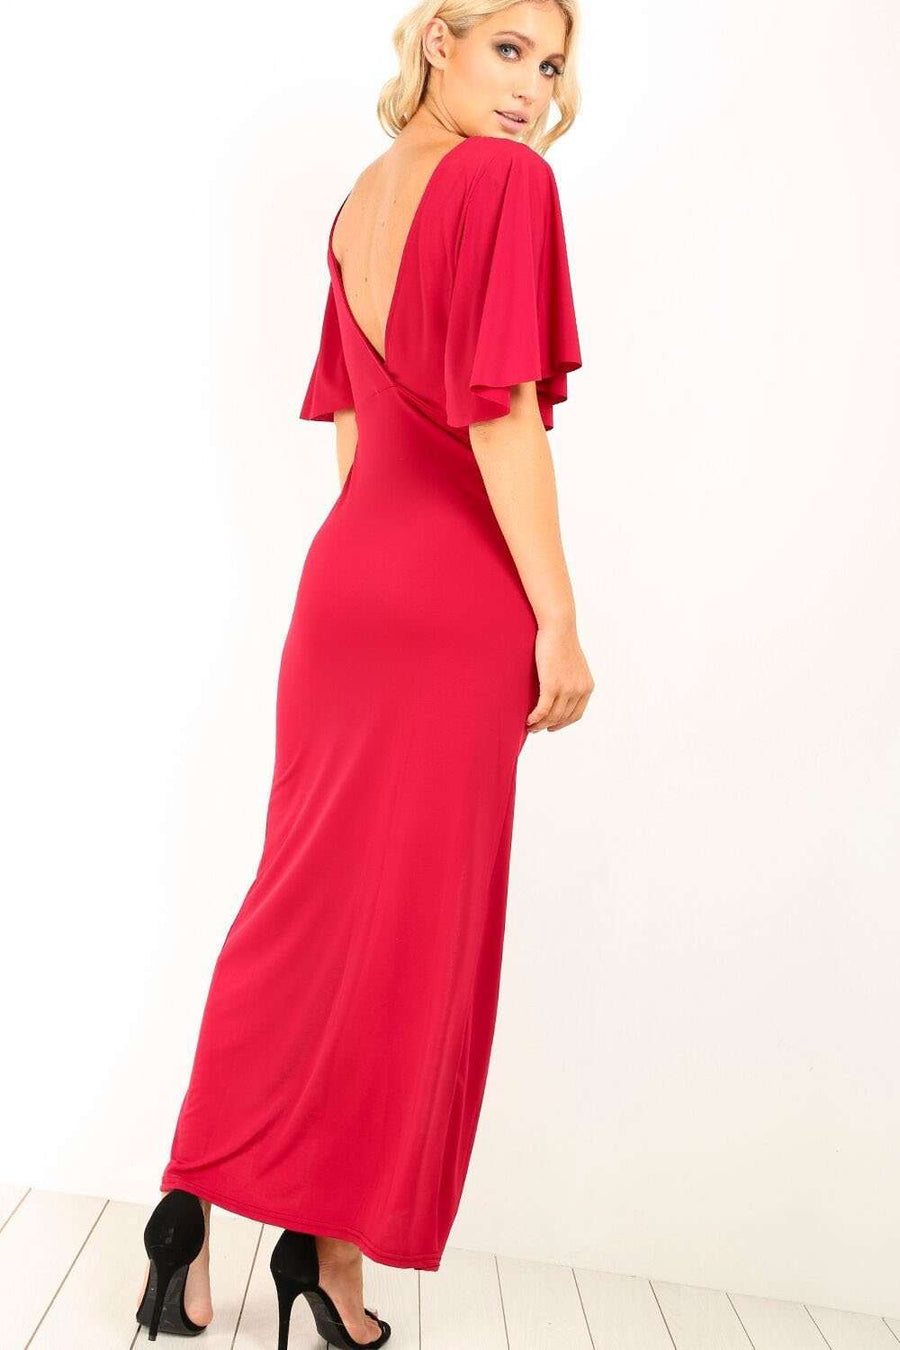 Layla Open Back Split leg Maxi Dress - bejealous-com